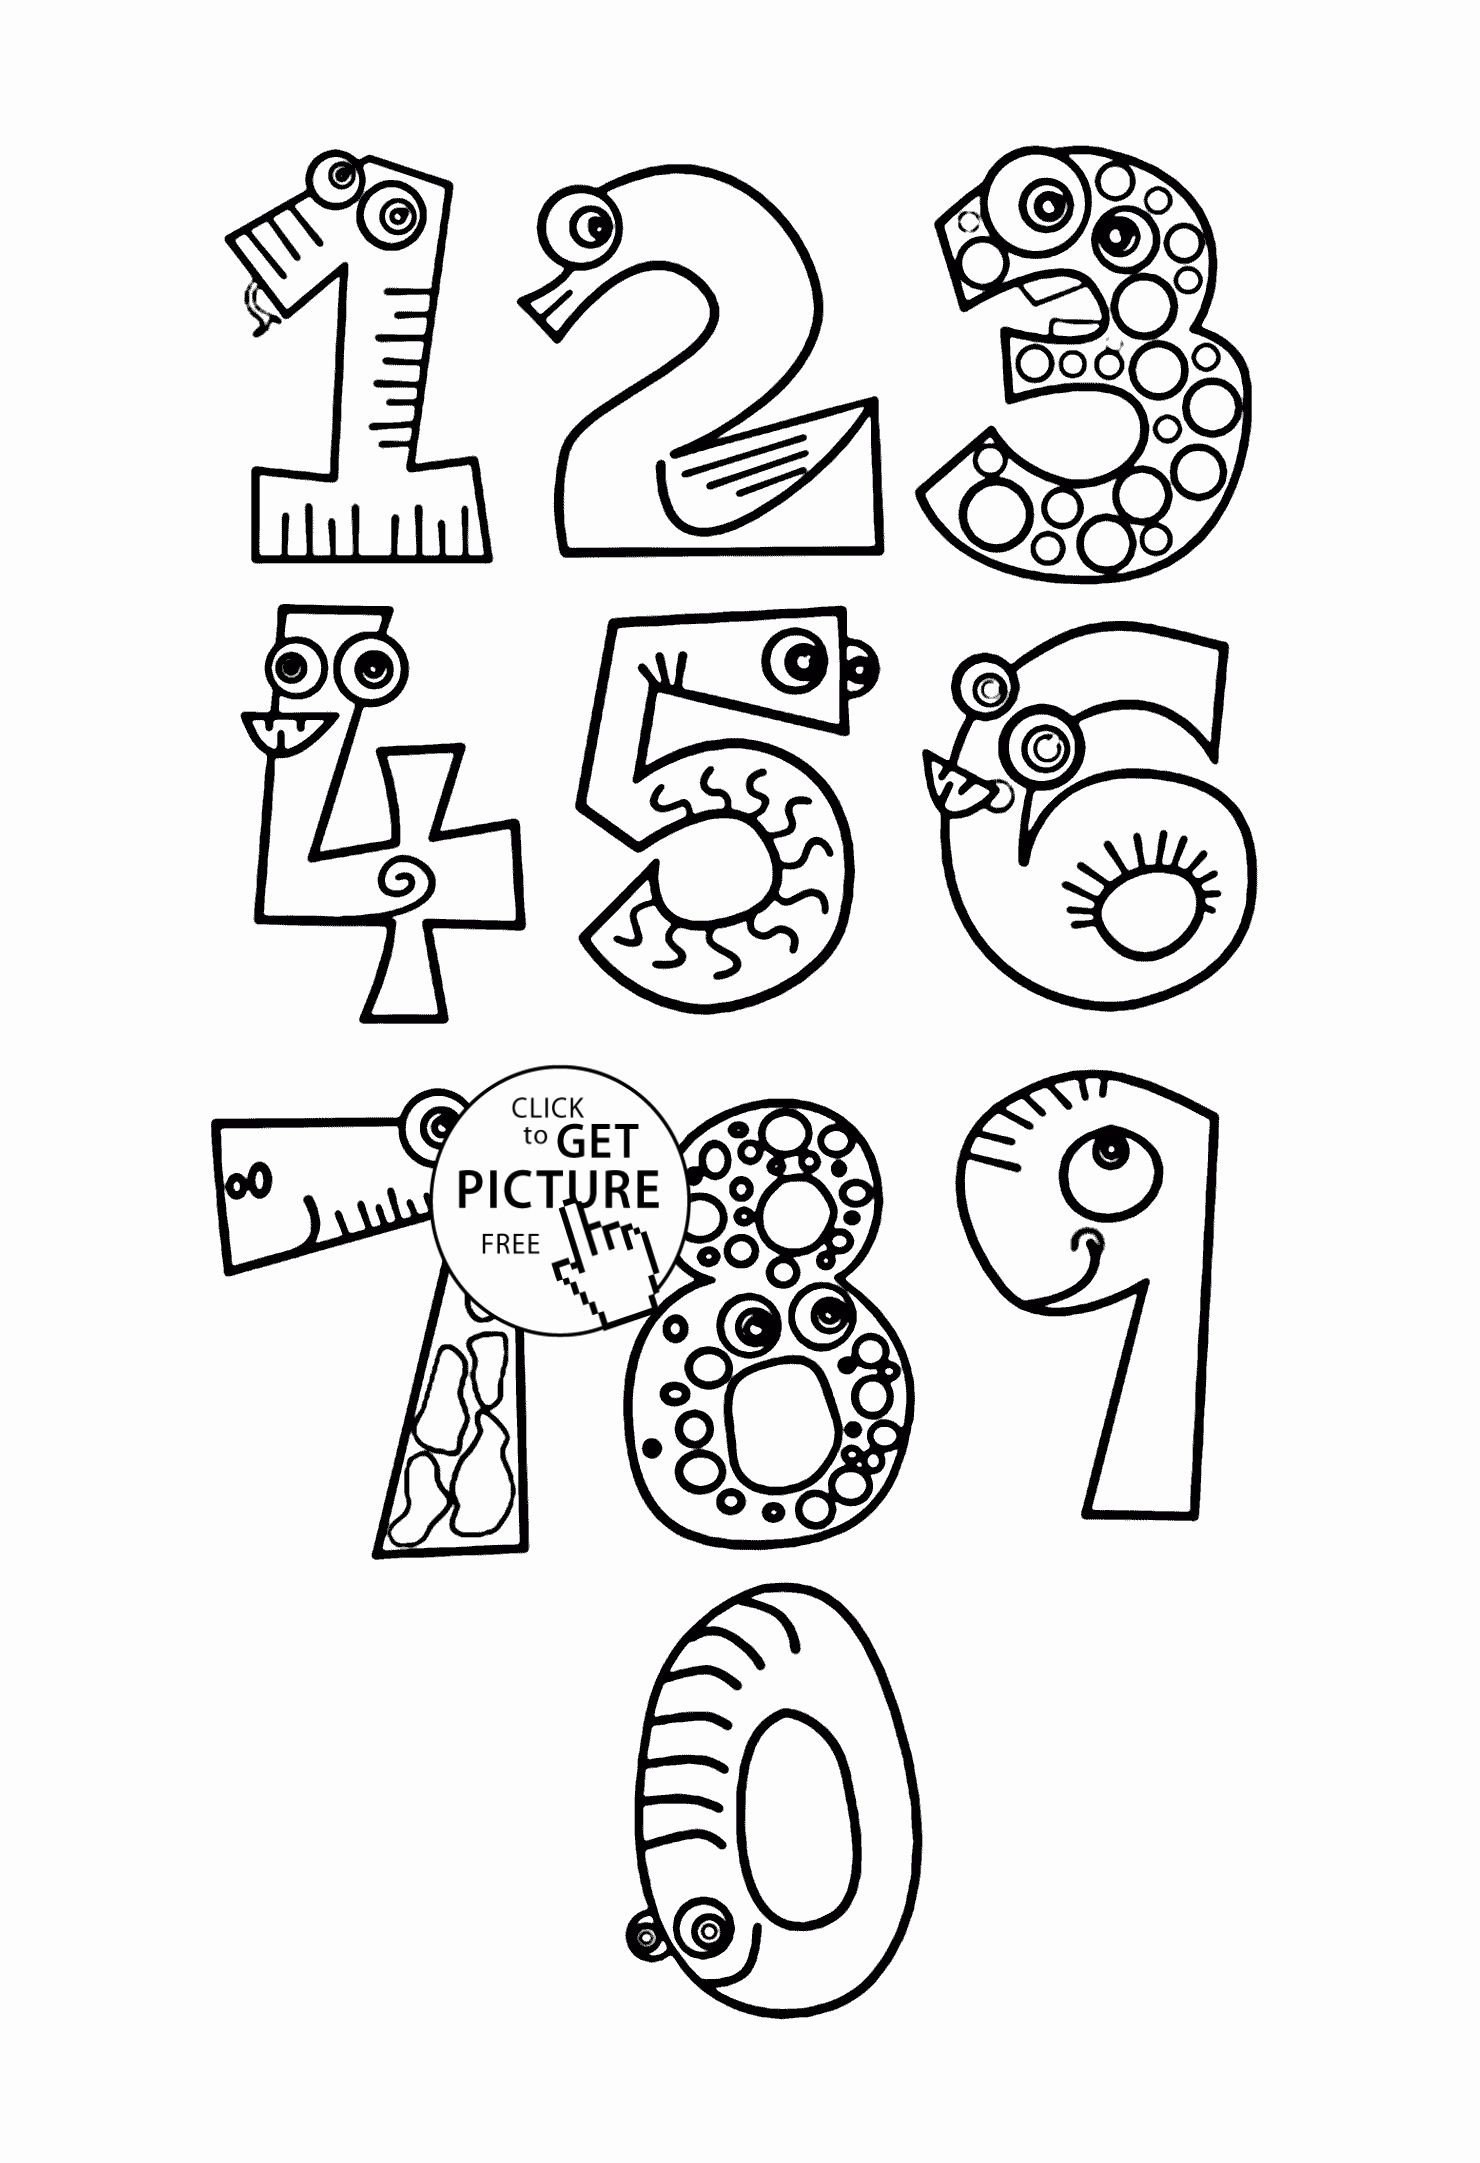 Pin By Karen Flowers On Escola Coloring Books Coloring Pages Coloring Pages For Kids